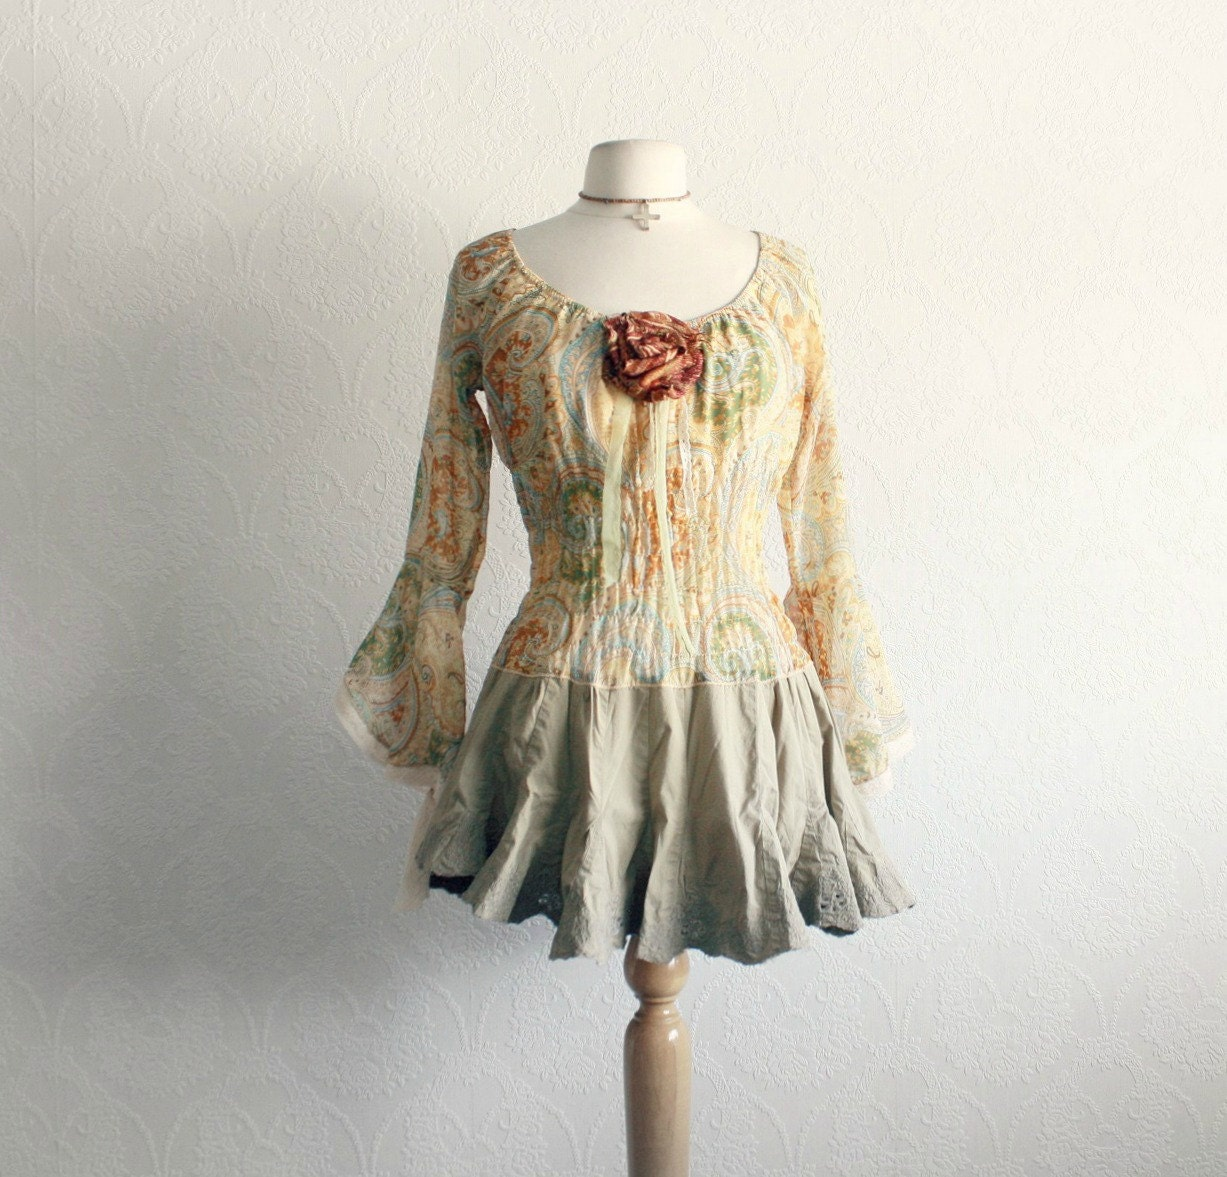 Romantic Top Bohemian Blouse Golden Tan Upcycled Clothing